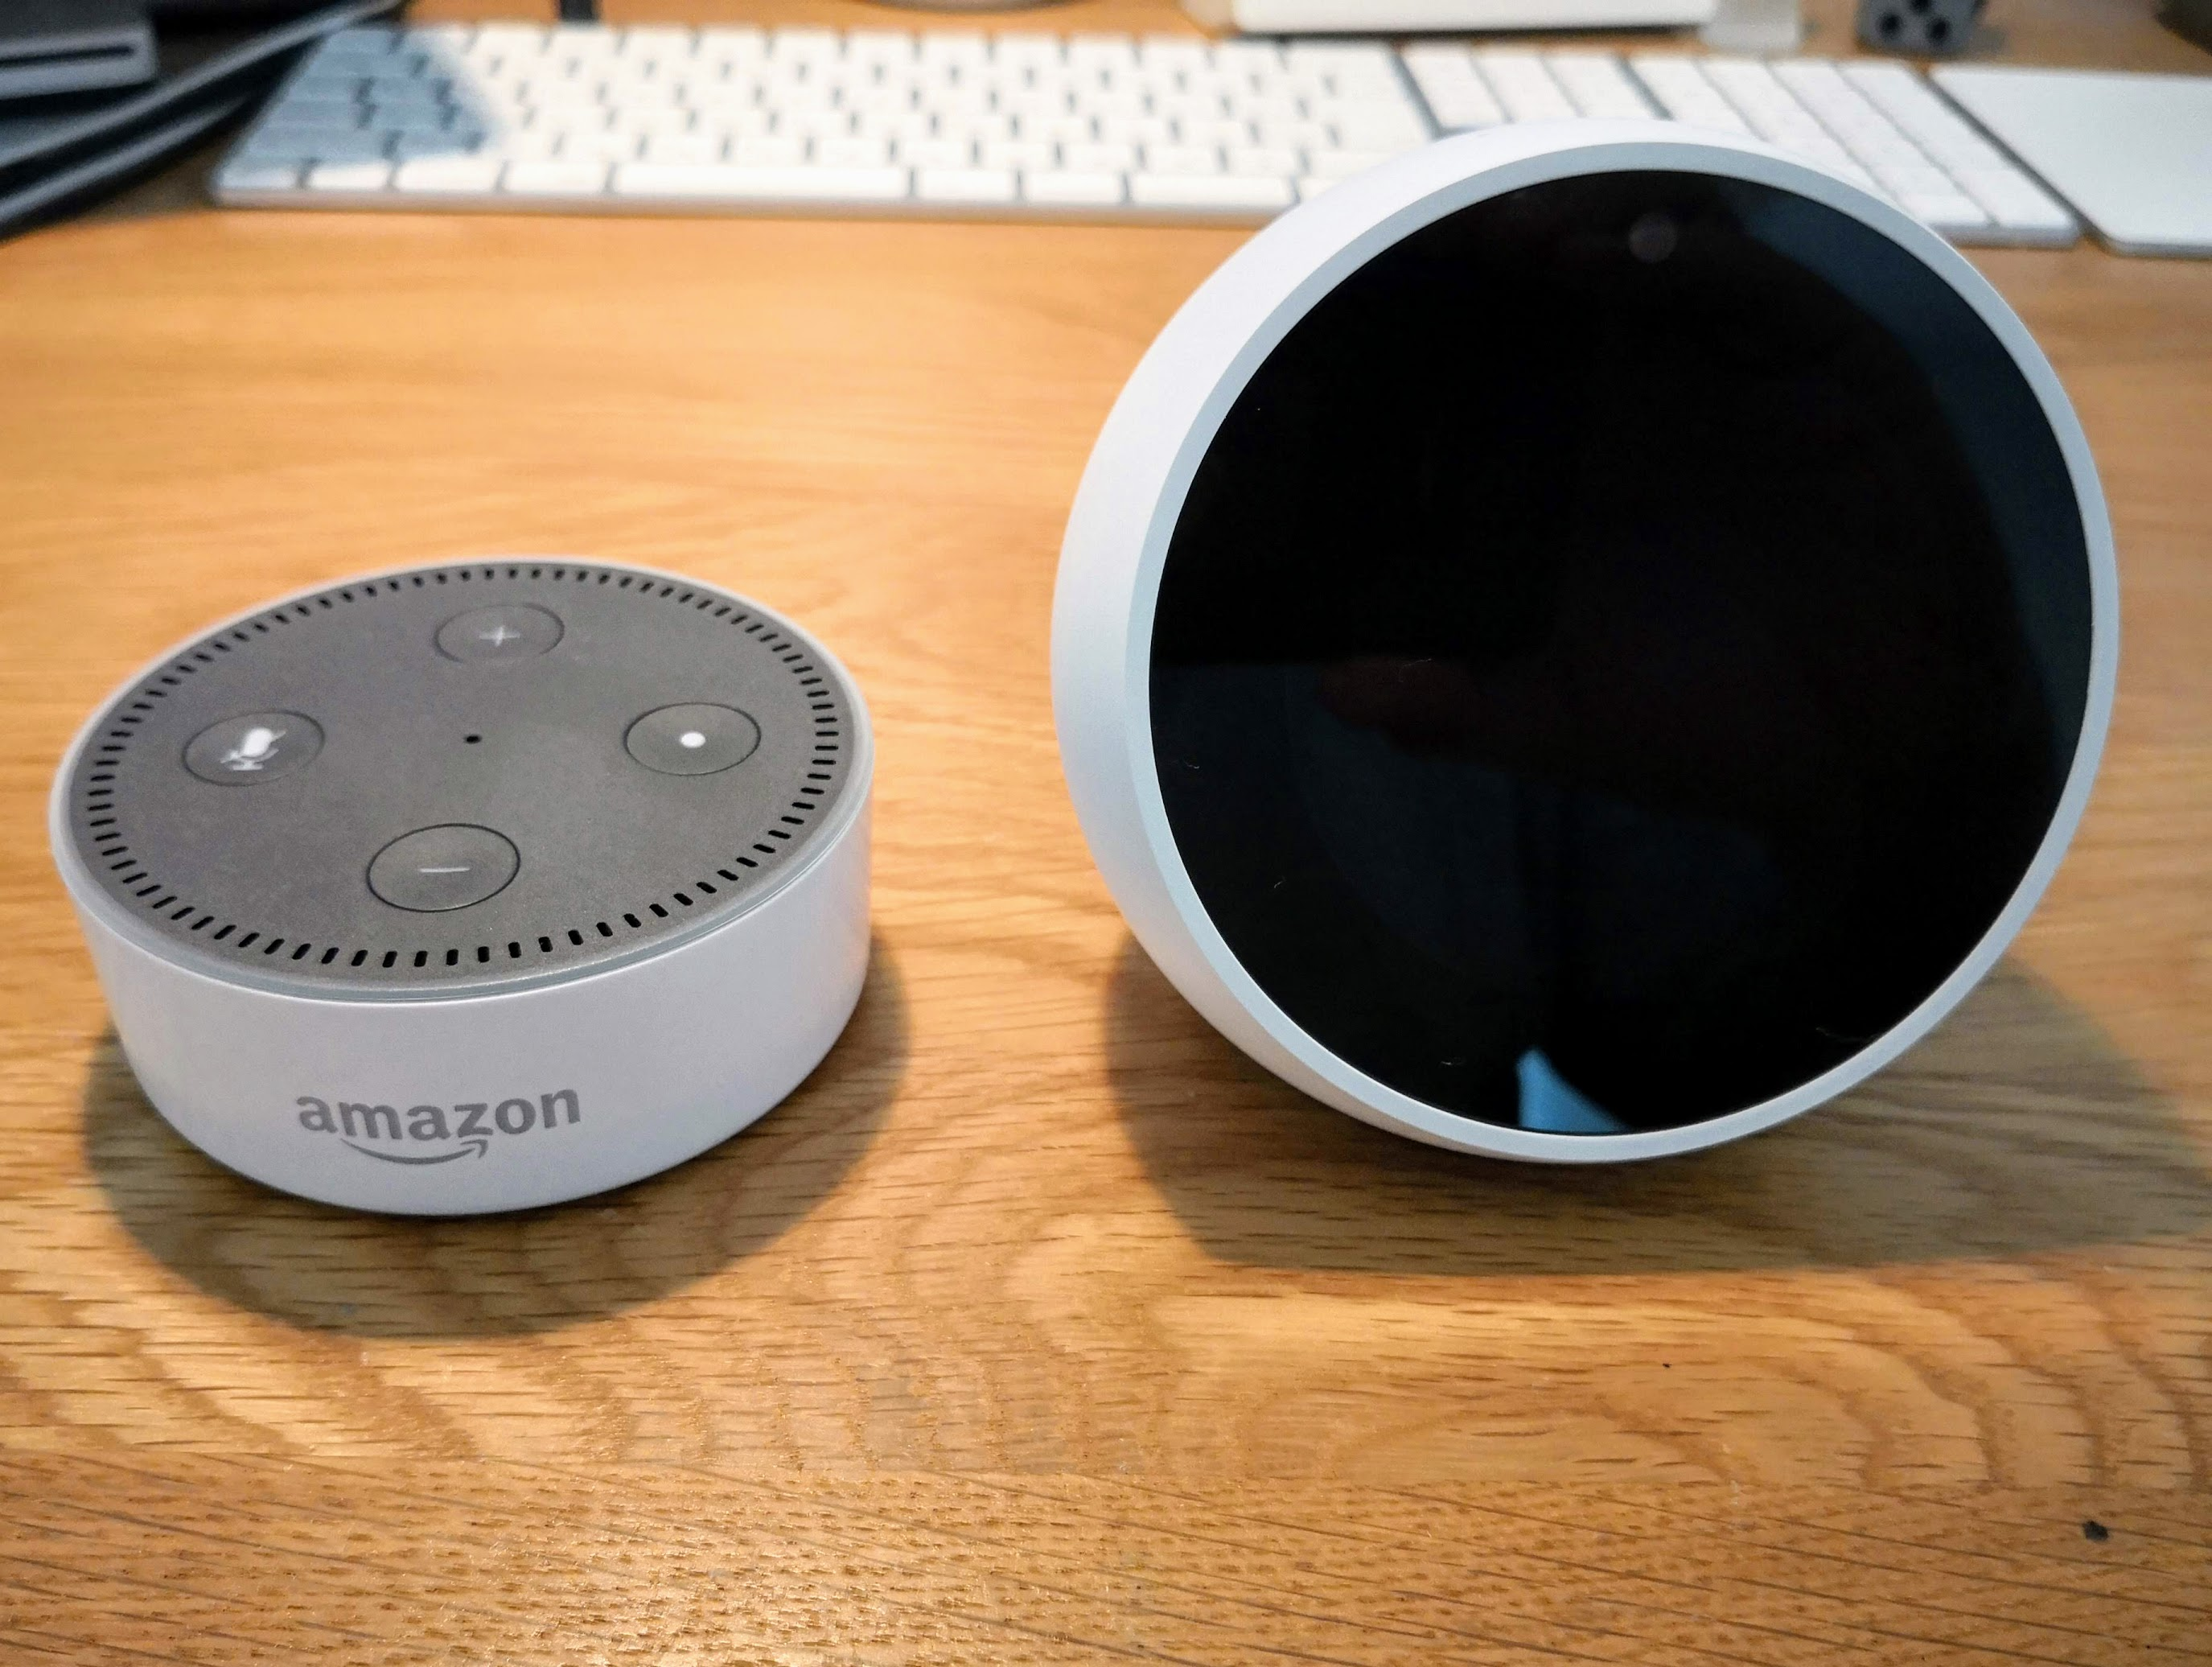 Amazon Echo SpotとAmazon Echo dotを並べて置いている様子